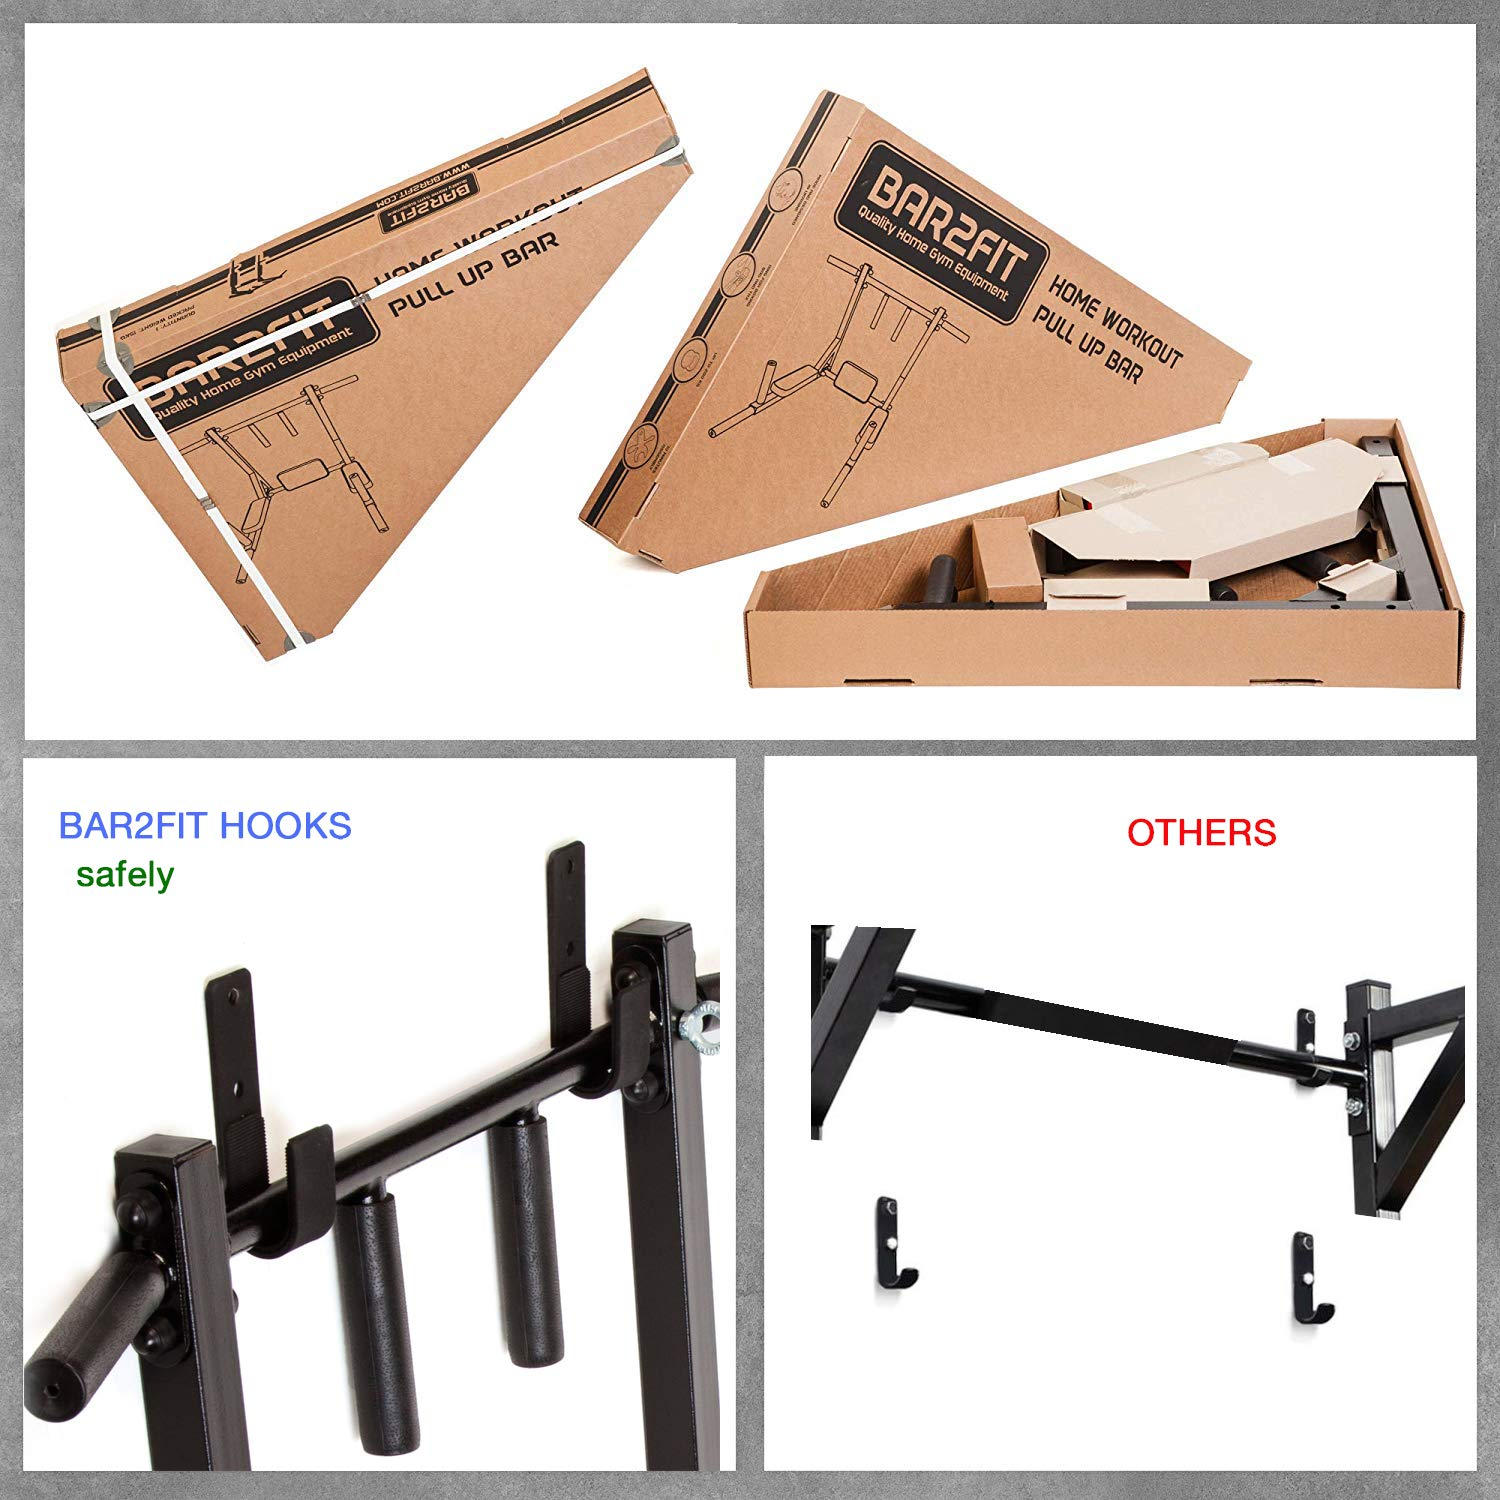 Wall Mounted Pull Up Bar - Pullup Bar Wall Mount - Chin Up Bar - Pull Up Bars and Dip Bar - Pullup and Dip Bar - Dip Station Pull Bar - Pullup Bars Outdoor and Home Room or Garage Gym Multi Grip - Pul by BAR2FIT QUALITY SPORTS EQUIPMENT (Image #5)